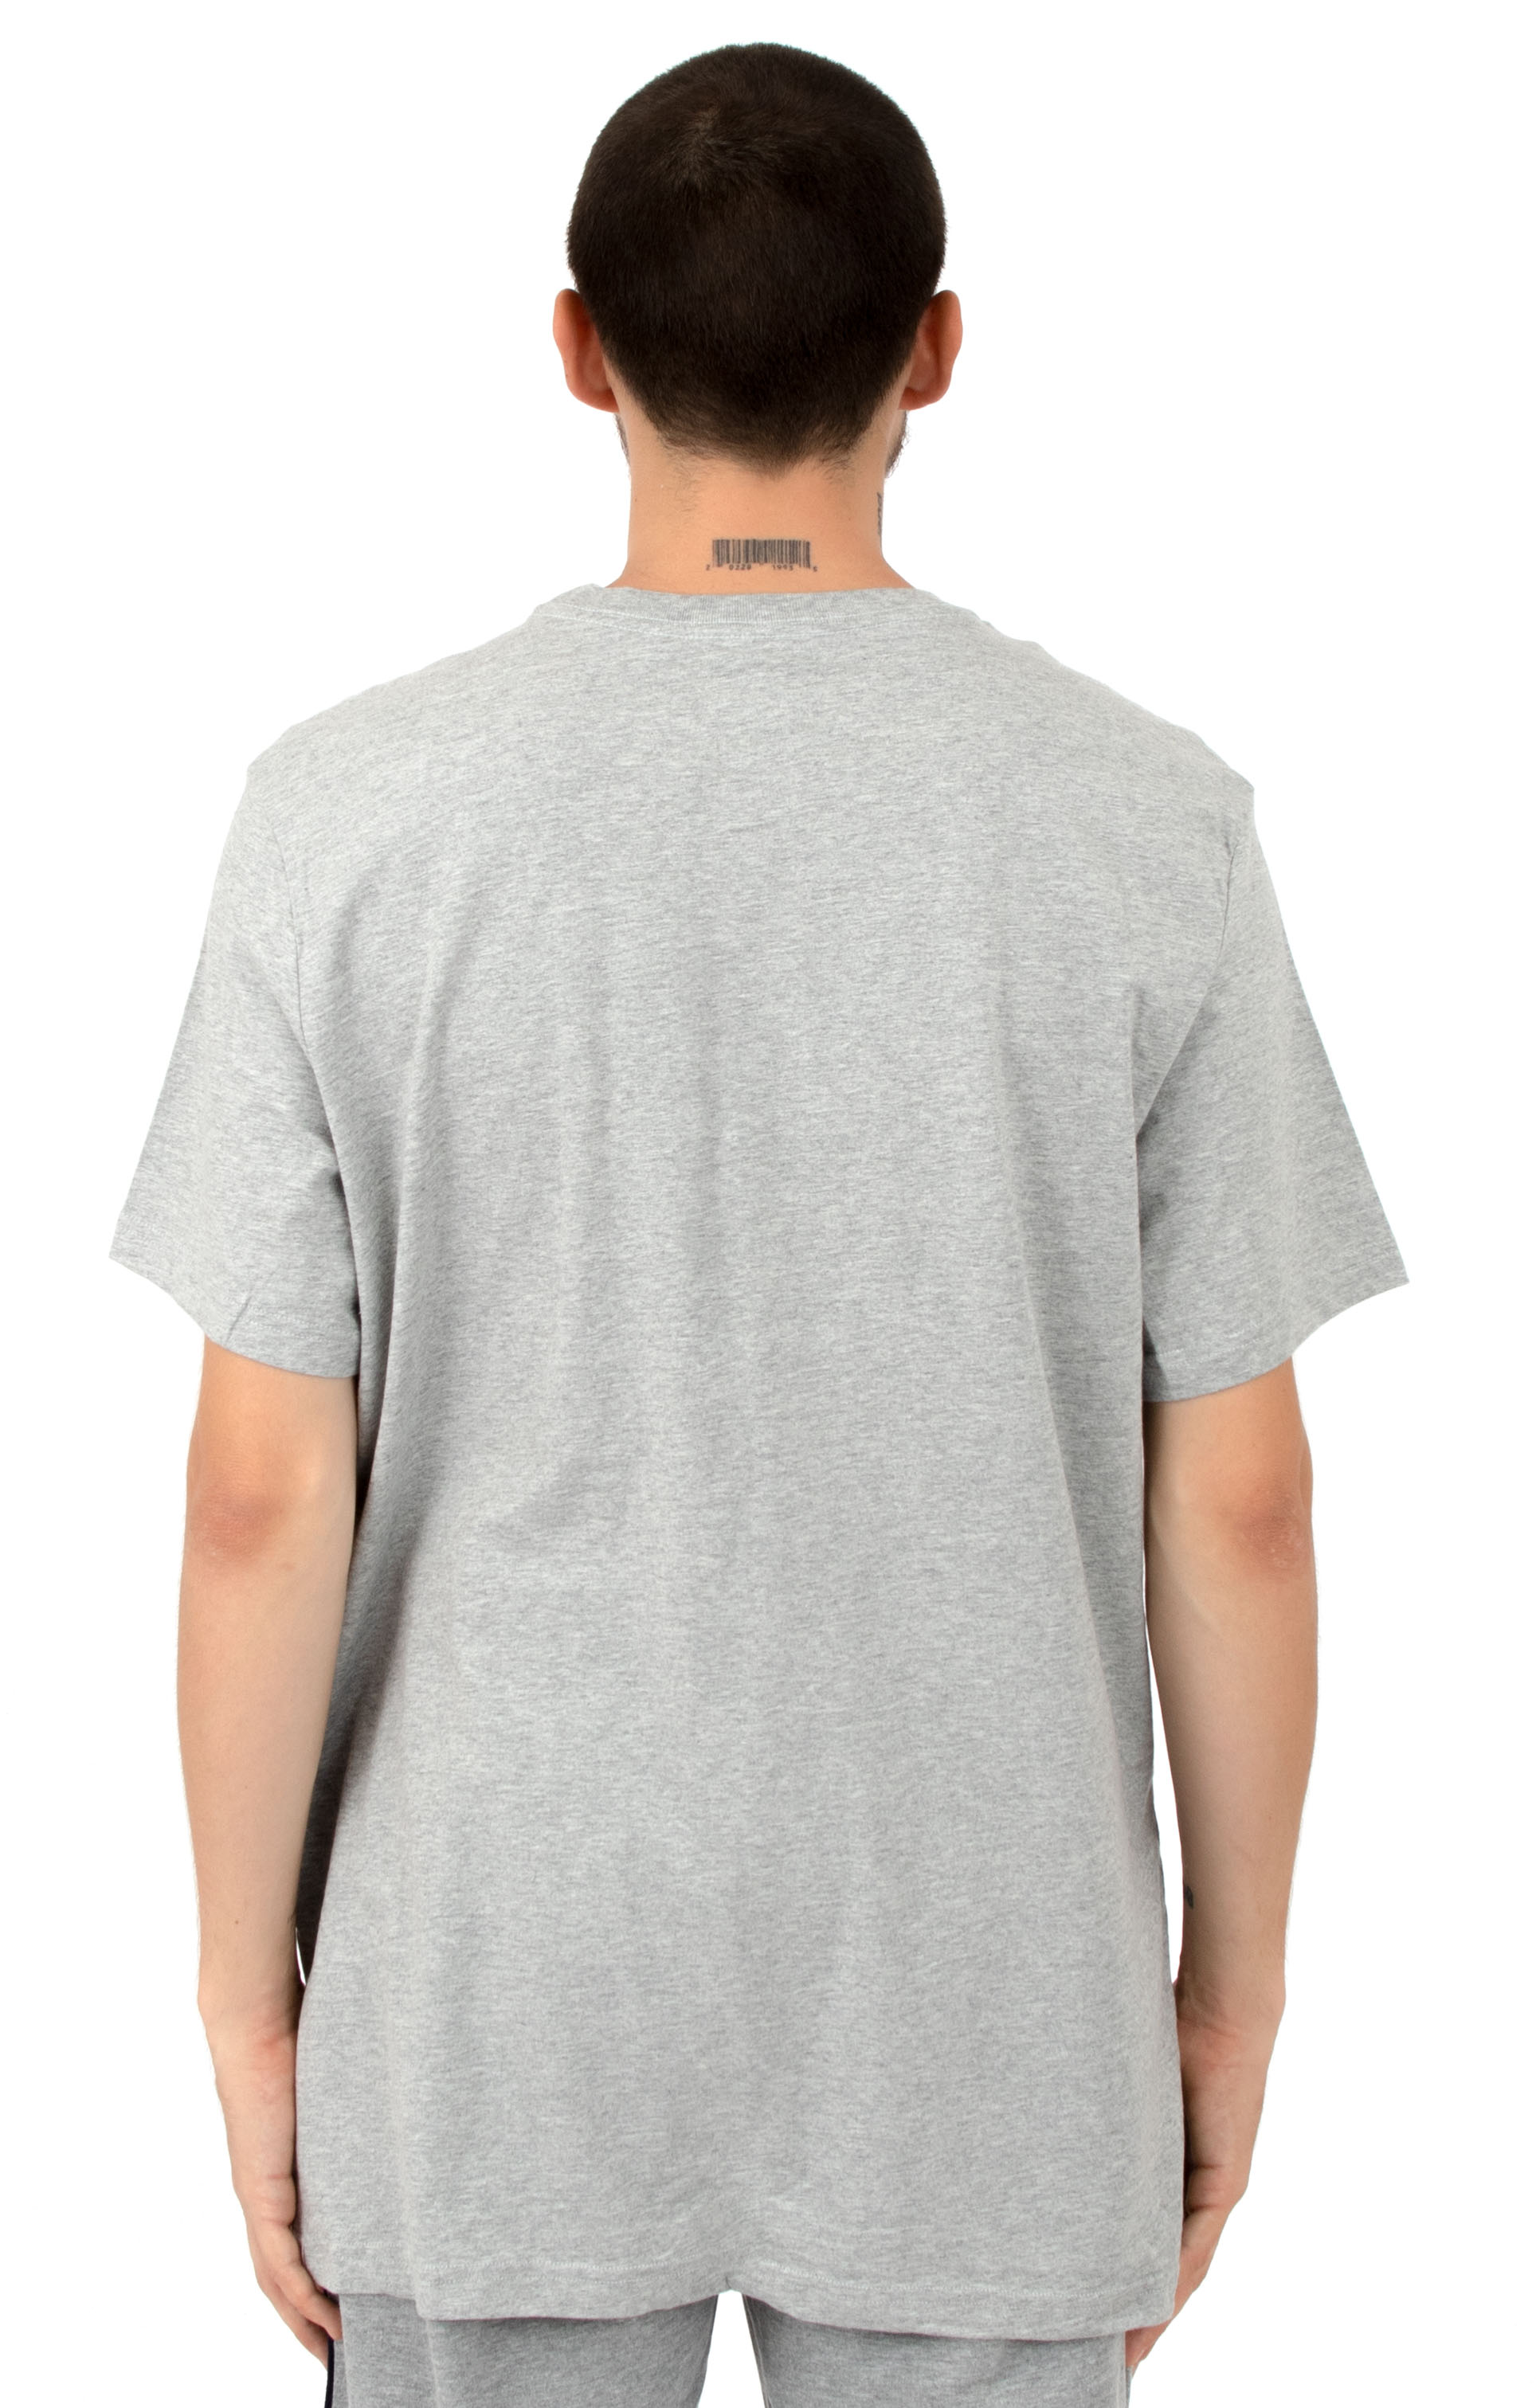 Core Flag Crew T-Shirt - Heather Grey 3